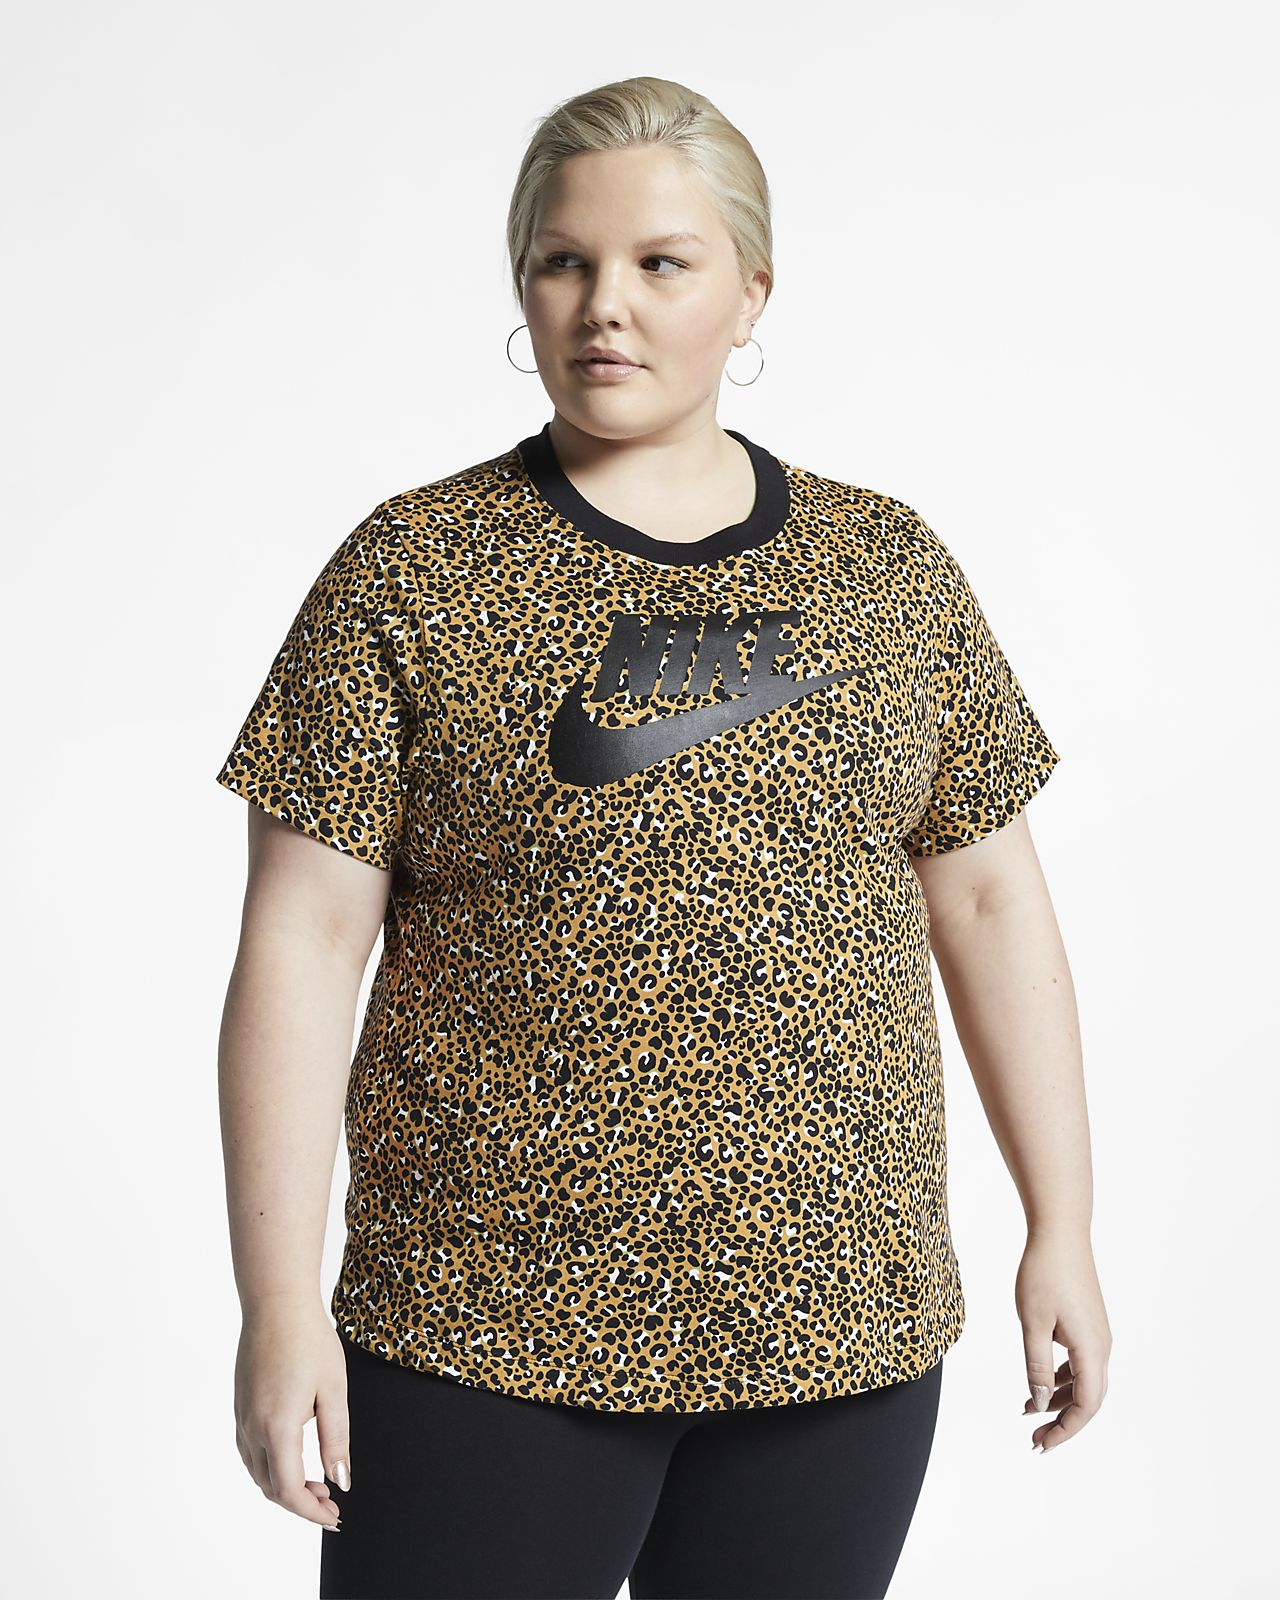 Nike Sportswear Animal Print Women's Short-Sleeve Top (Plus Size)